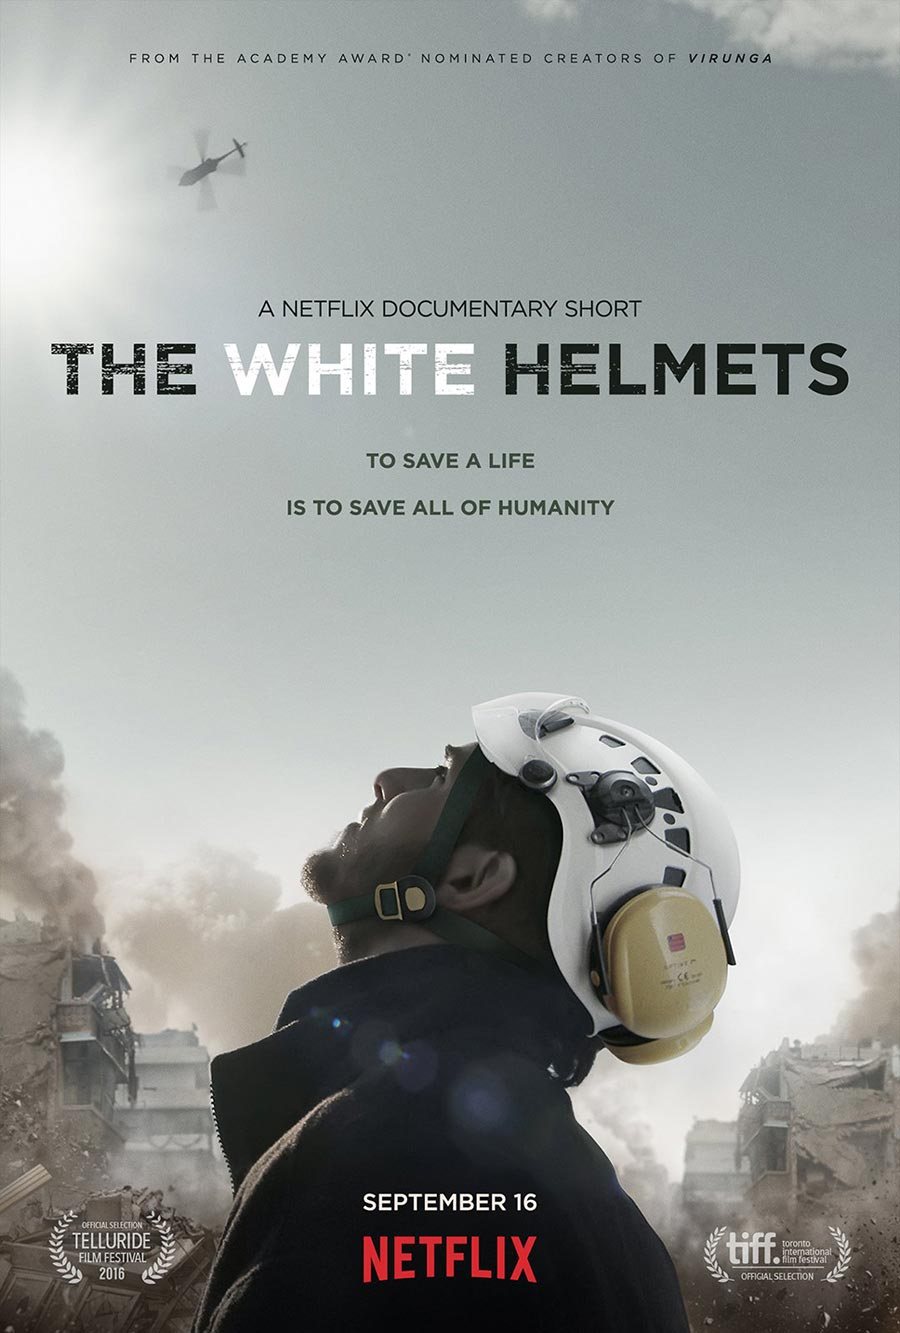 Click the image to watch the documentary to learn more about the White Helments